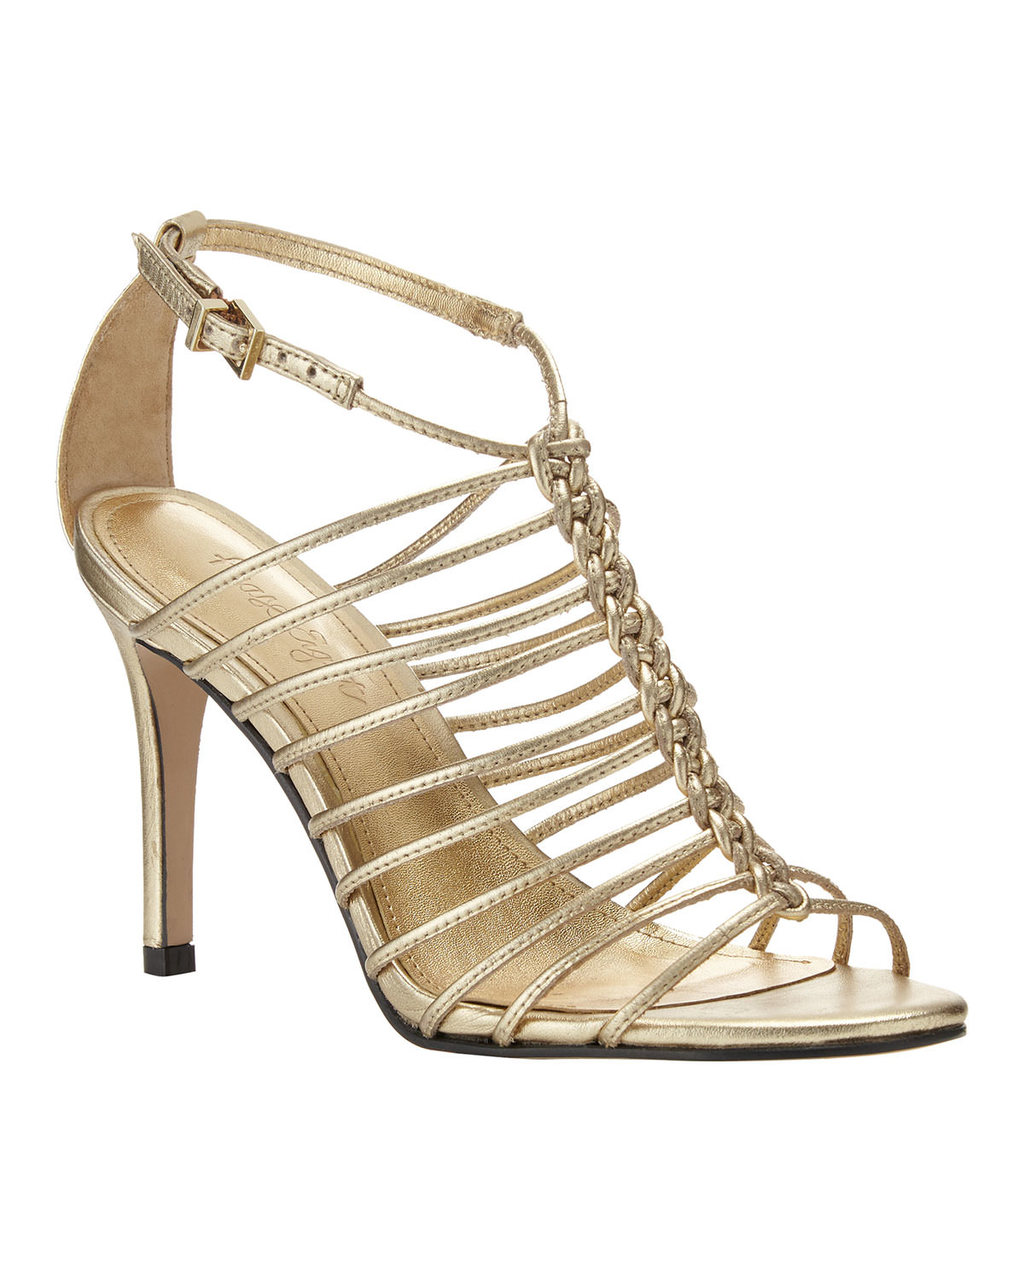 Gigi Leather Sandal - predominant colour: gold; occasions: evening; material: leather; heel height: high; ankle detail: ankle strap; heel: stiletto; toe: open toe/peeptoe; style: strappy; finish: metallic; pattern: plain; season: s/s 2016